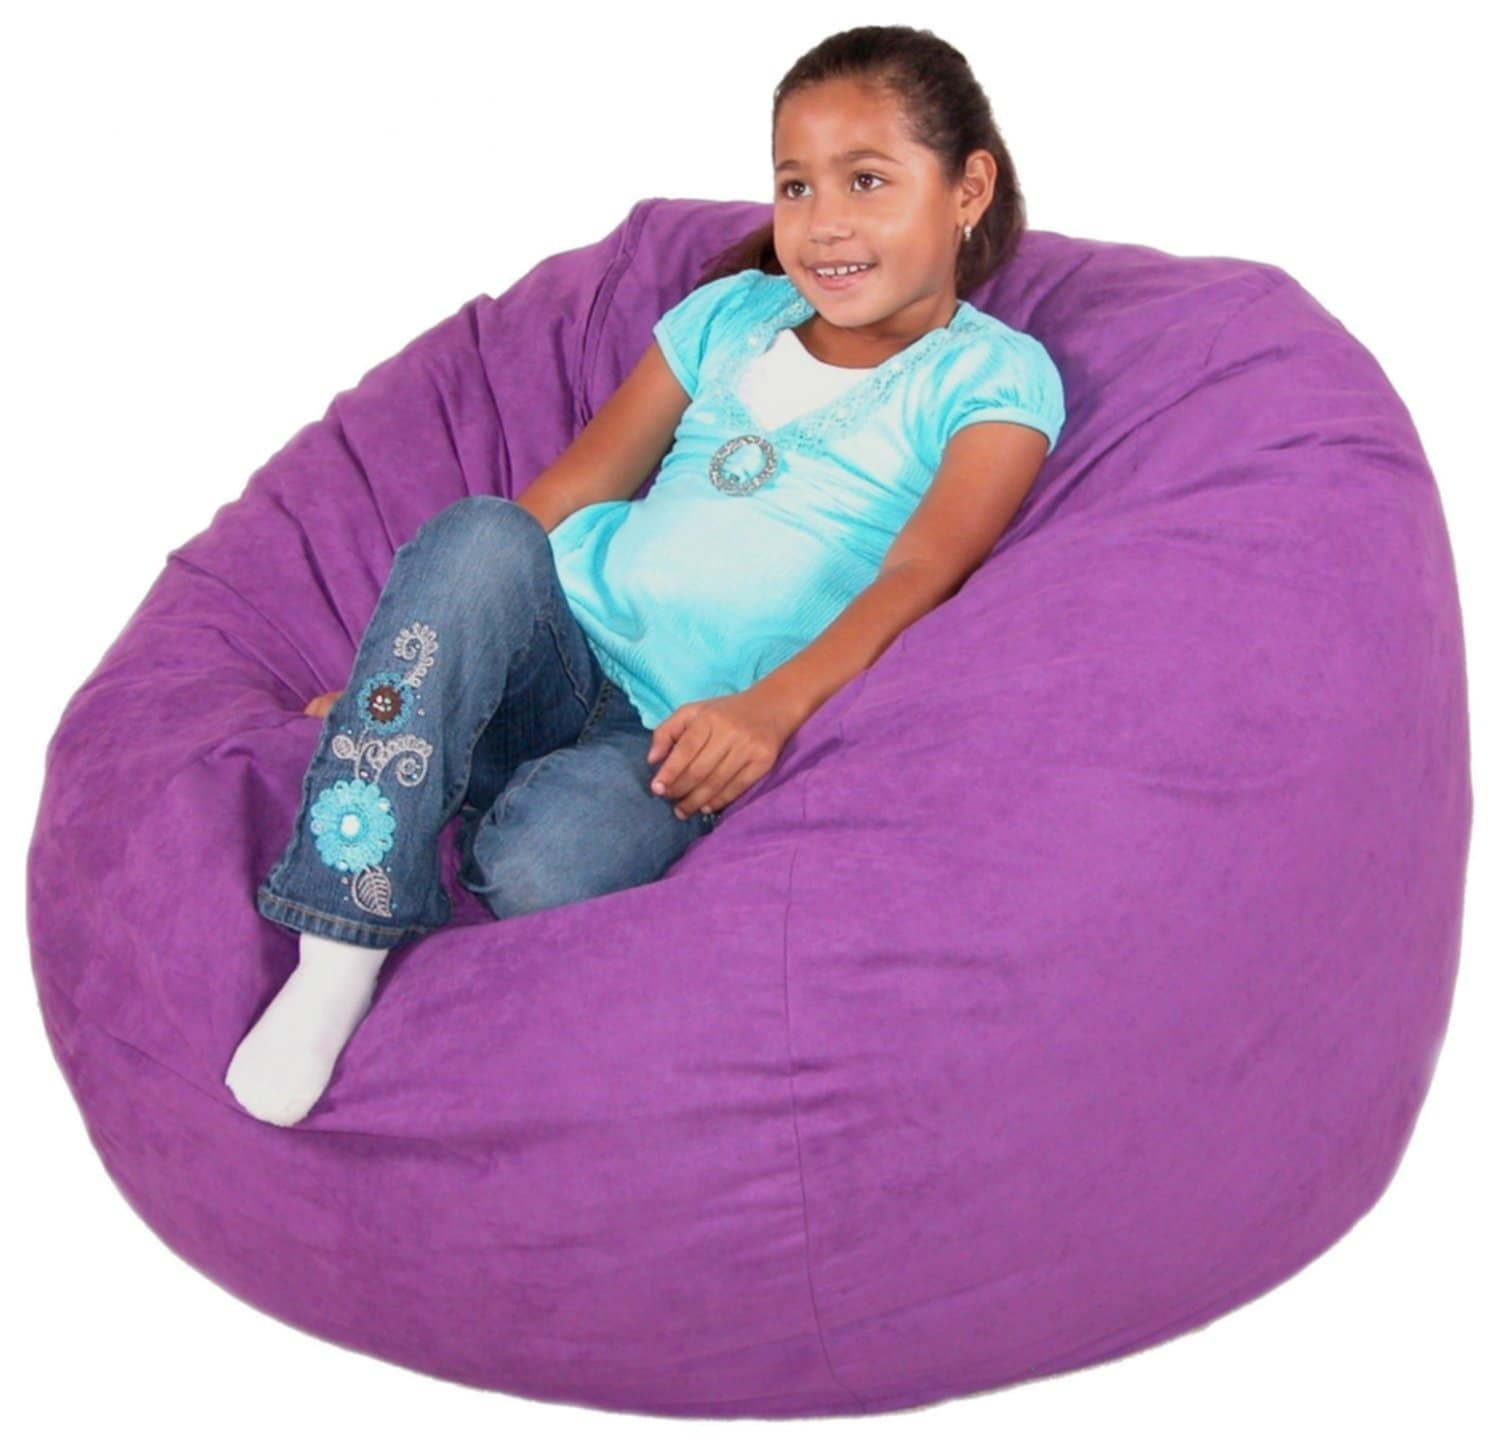 Cozy Bean Bag Chairs